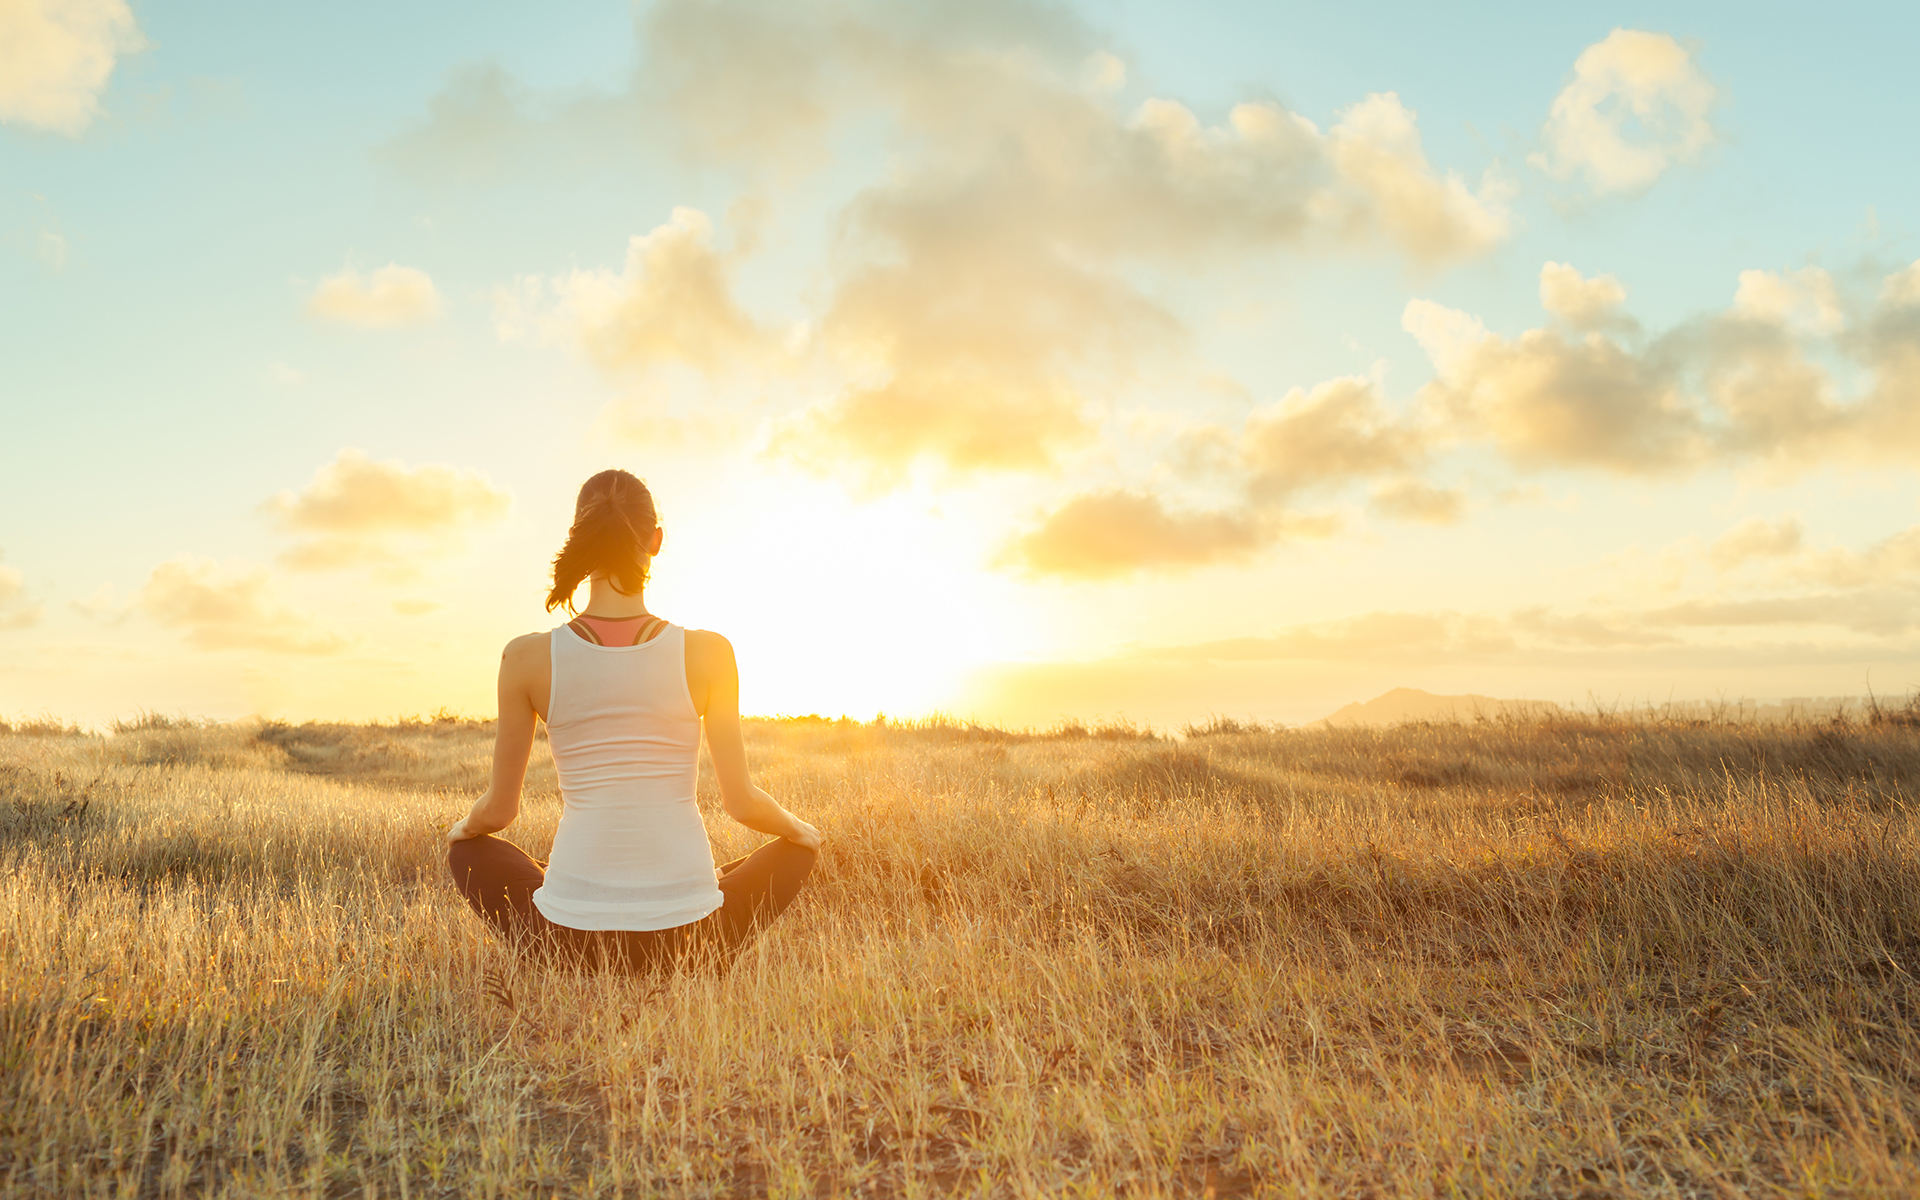 A Guided Meditation for Gathering Your Energy - Woman meditating, yoga, feeling at peace outdoors